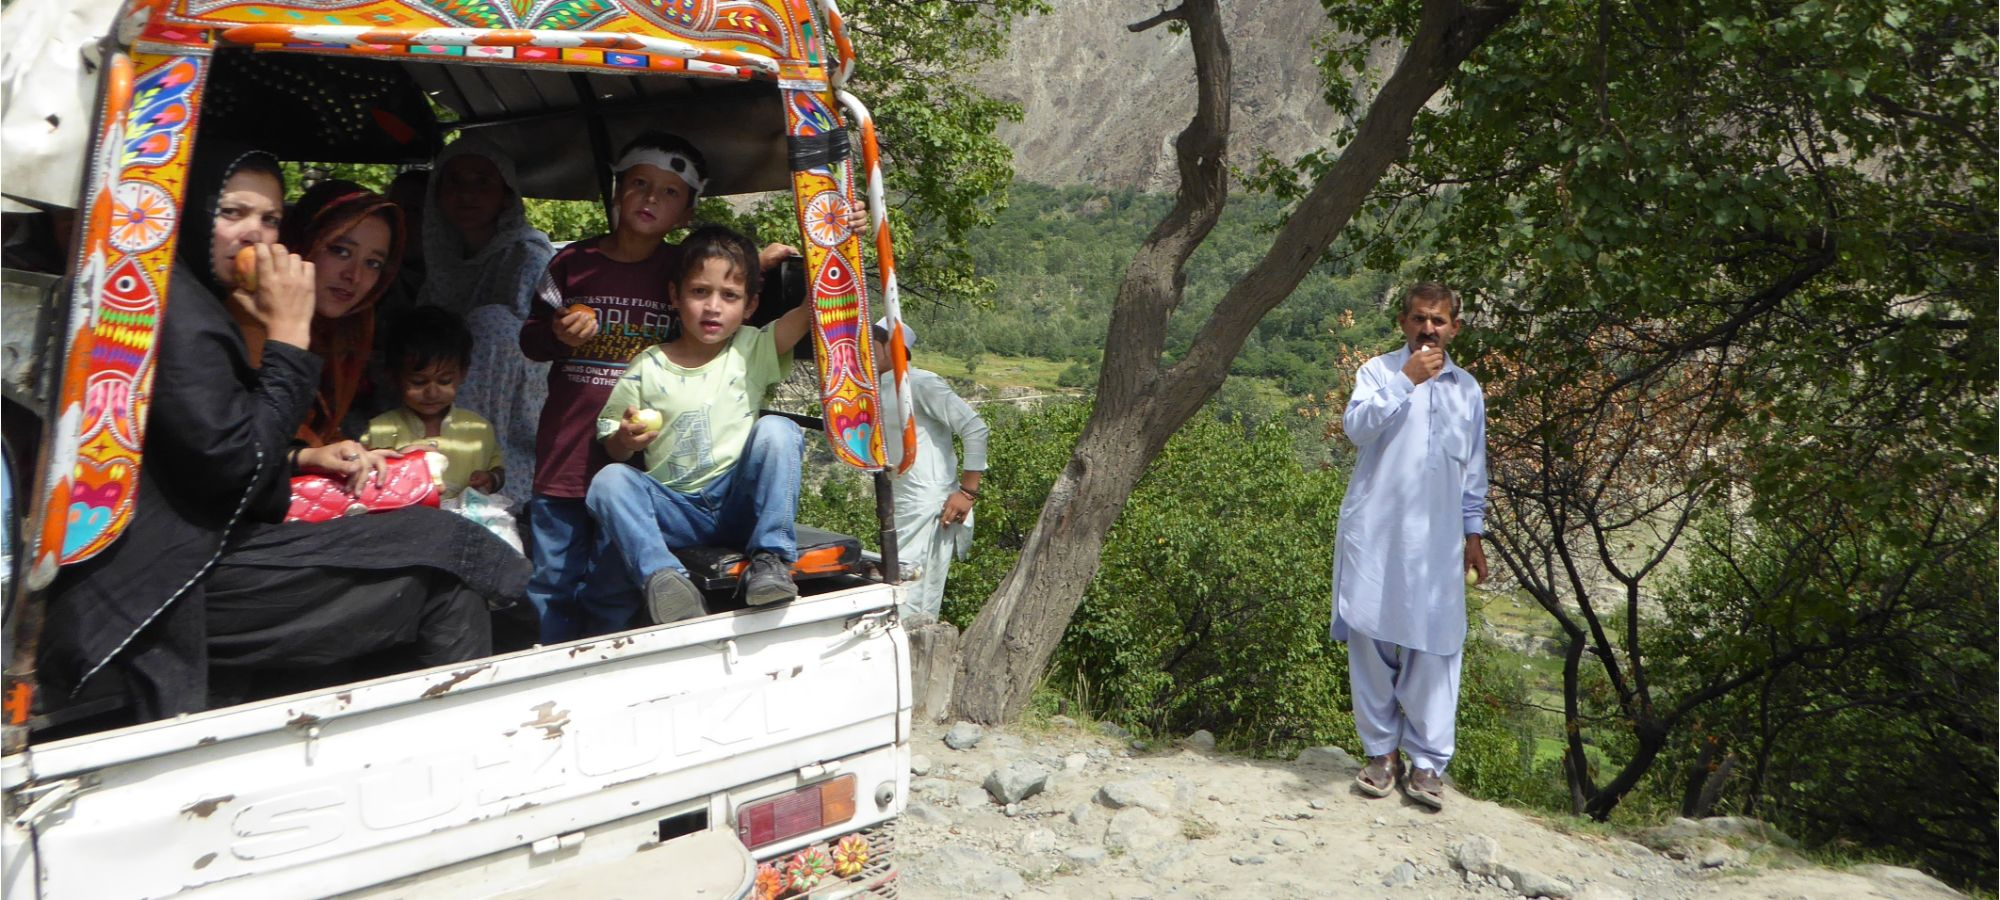 Taxi Service, Bagrot Valley, Pakistan